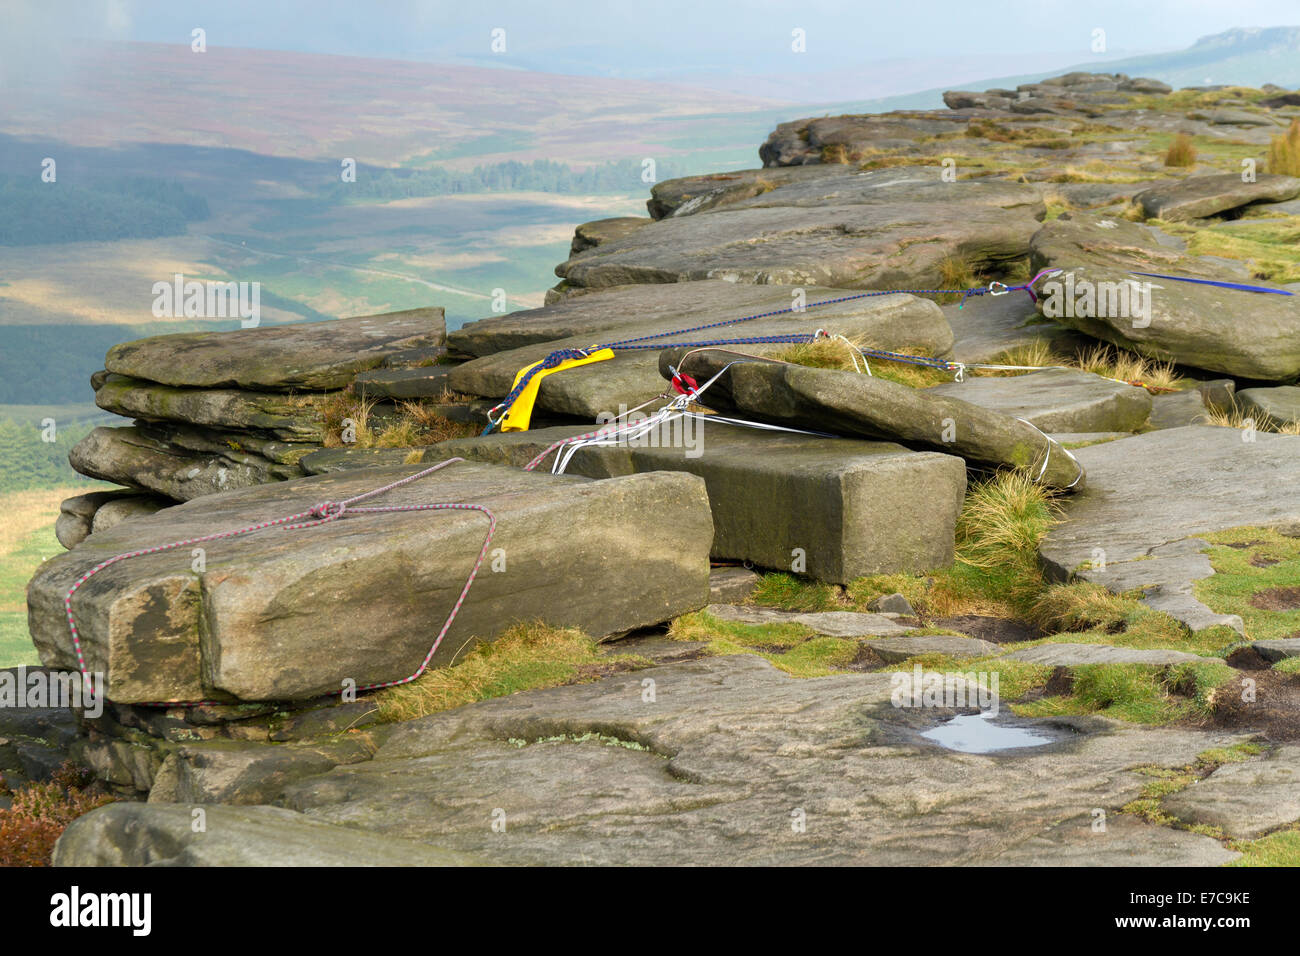 Rock climbing belay and safety anchor ropes fixed at the top of a crag on Stanage Edge in the Peak District Derbyshire - Stock Image